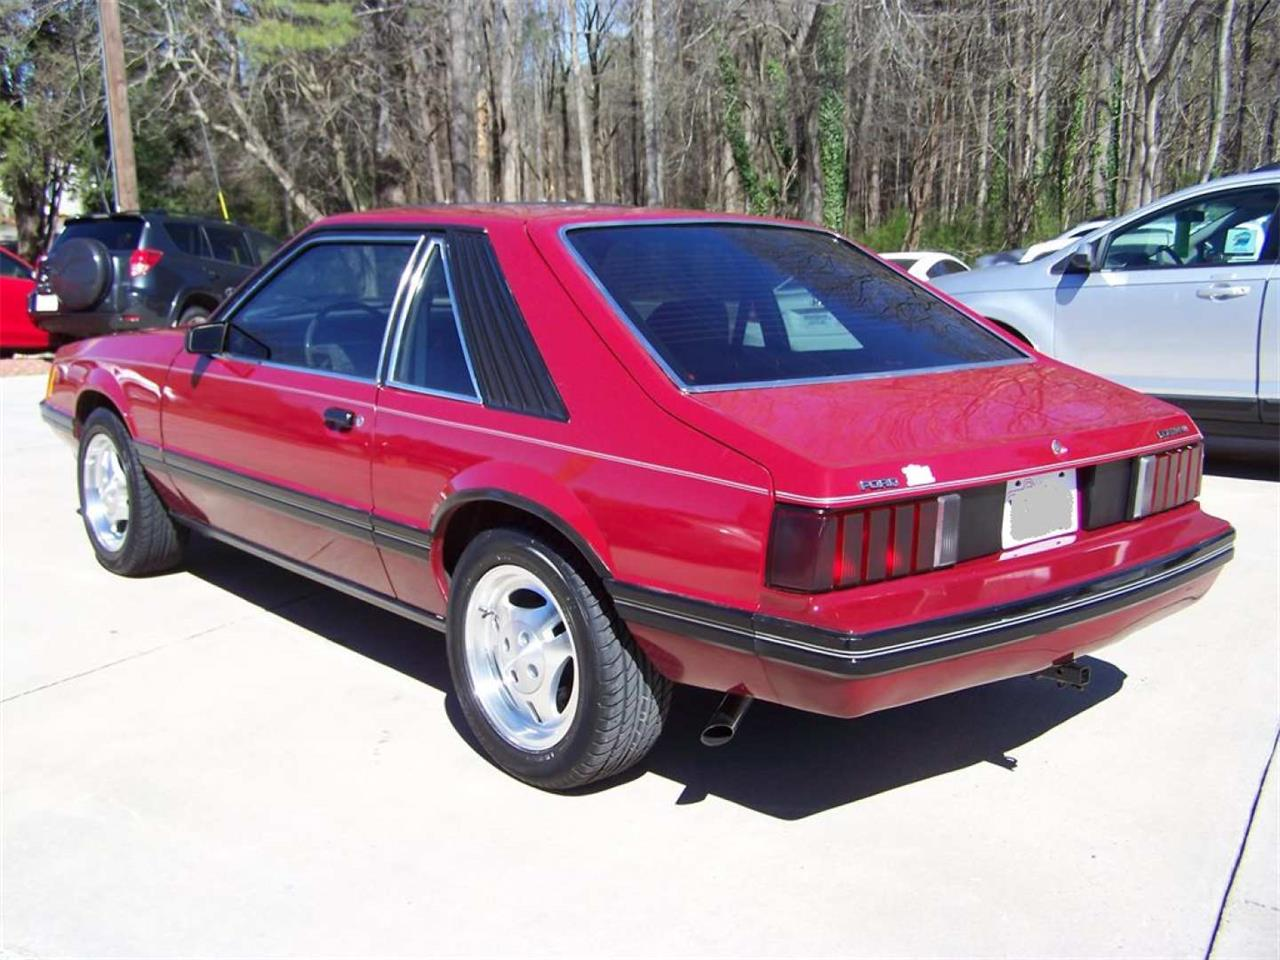 Large Picture of '81 Mustang located in Harvey Louisiana Auction Vehicle - Q5RH